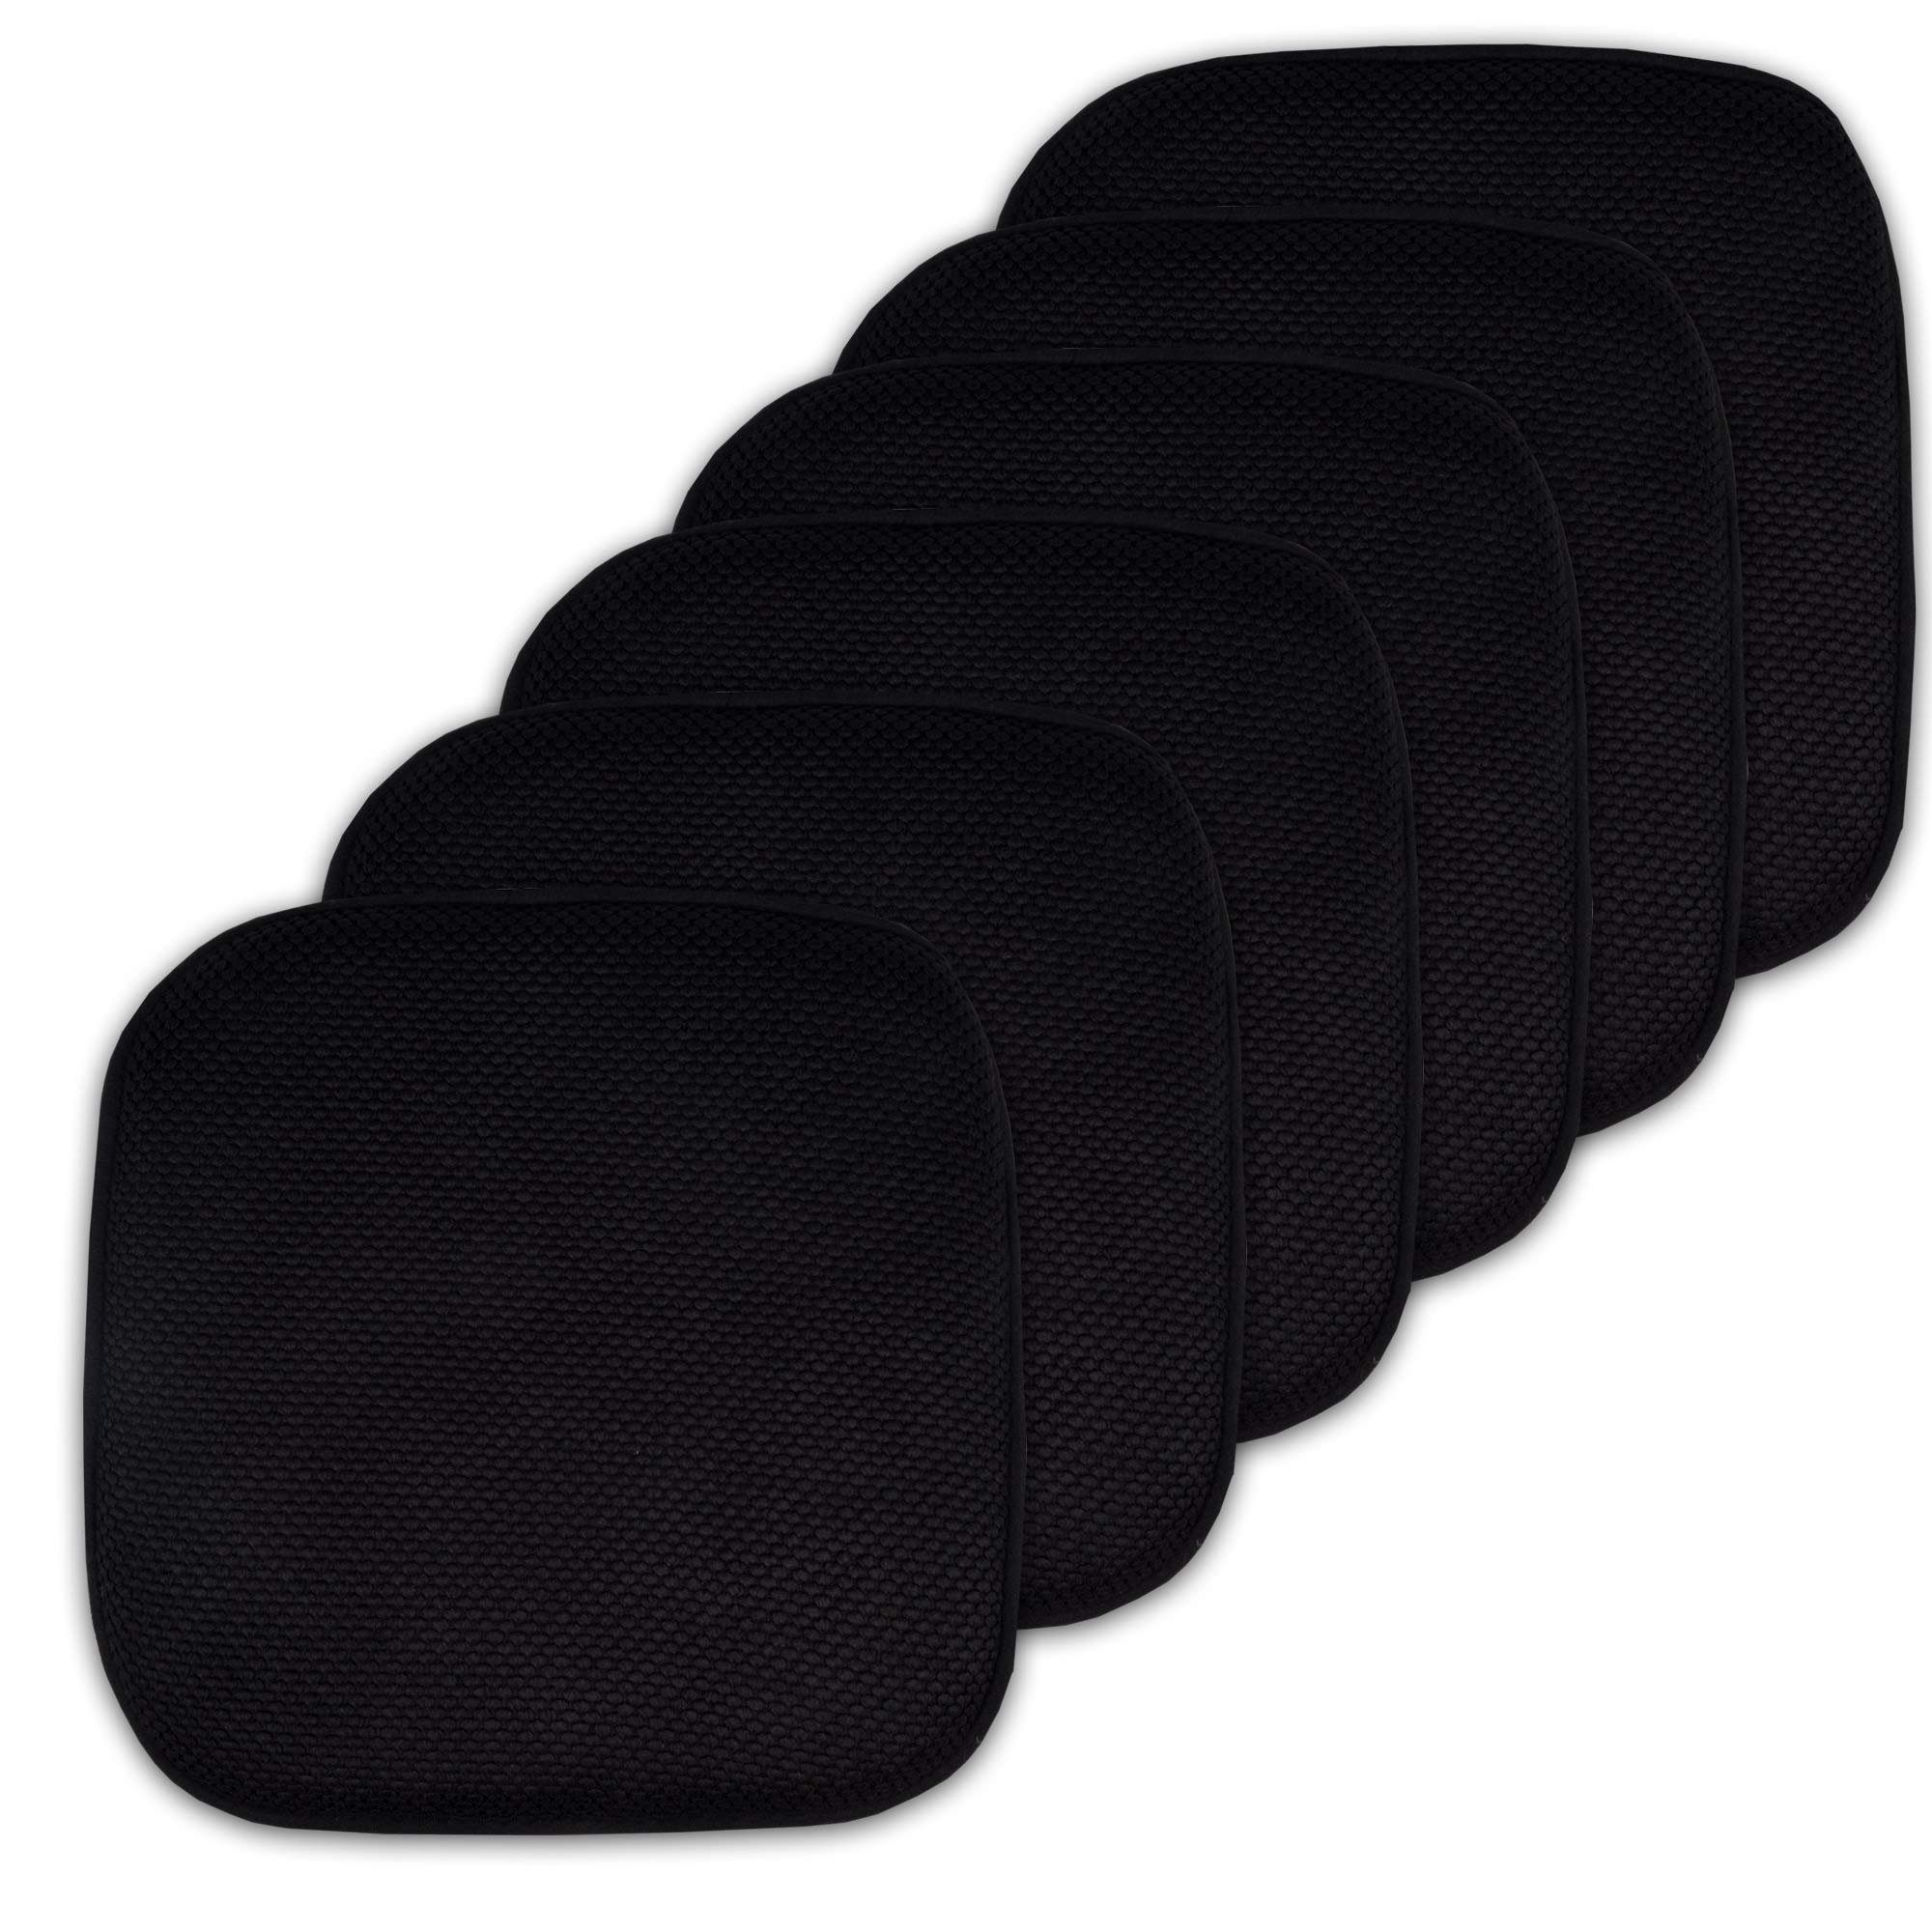 """Sweet Home Collection Cushion Memory Foam Chair Pads Honeycomb Nonslip Back Seat Cover 16"""" x 16"""" 6 Pack Black product image"""